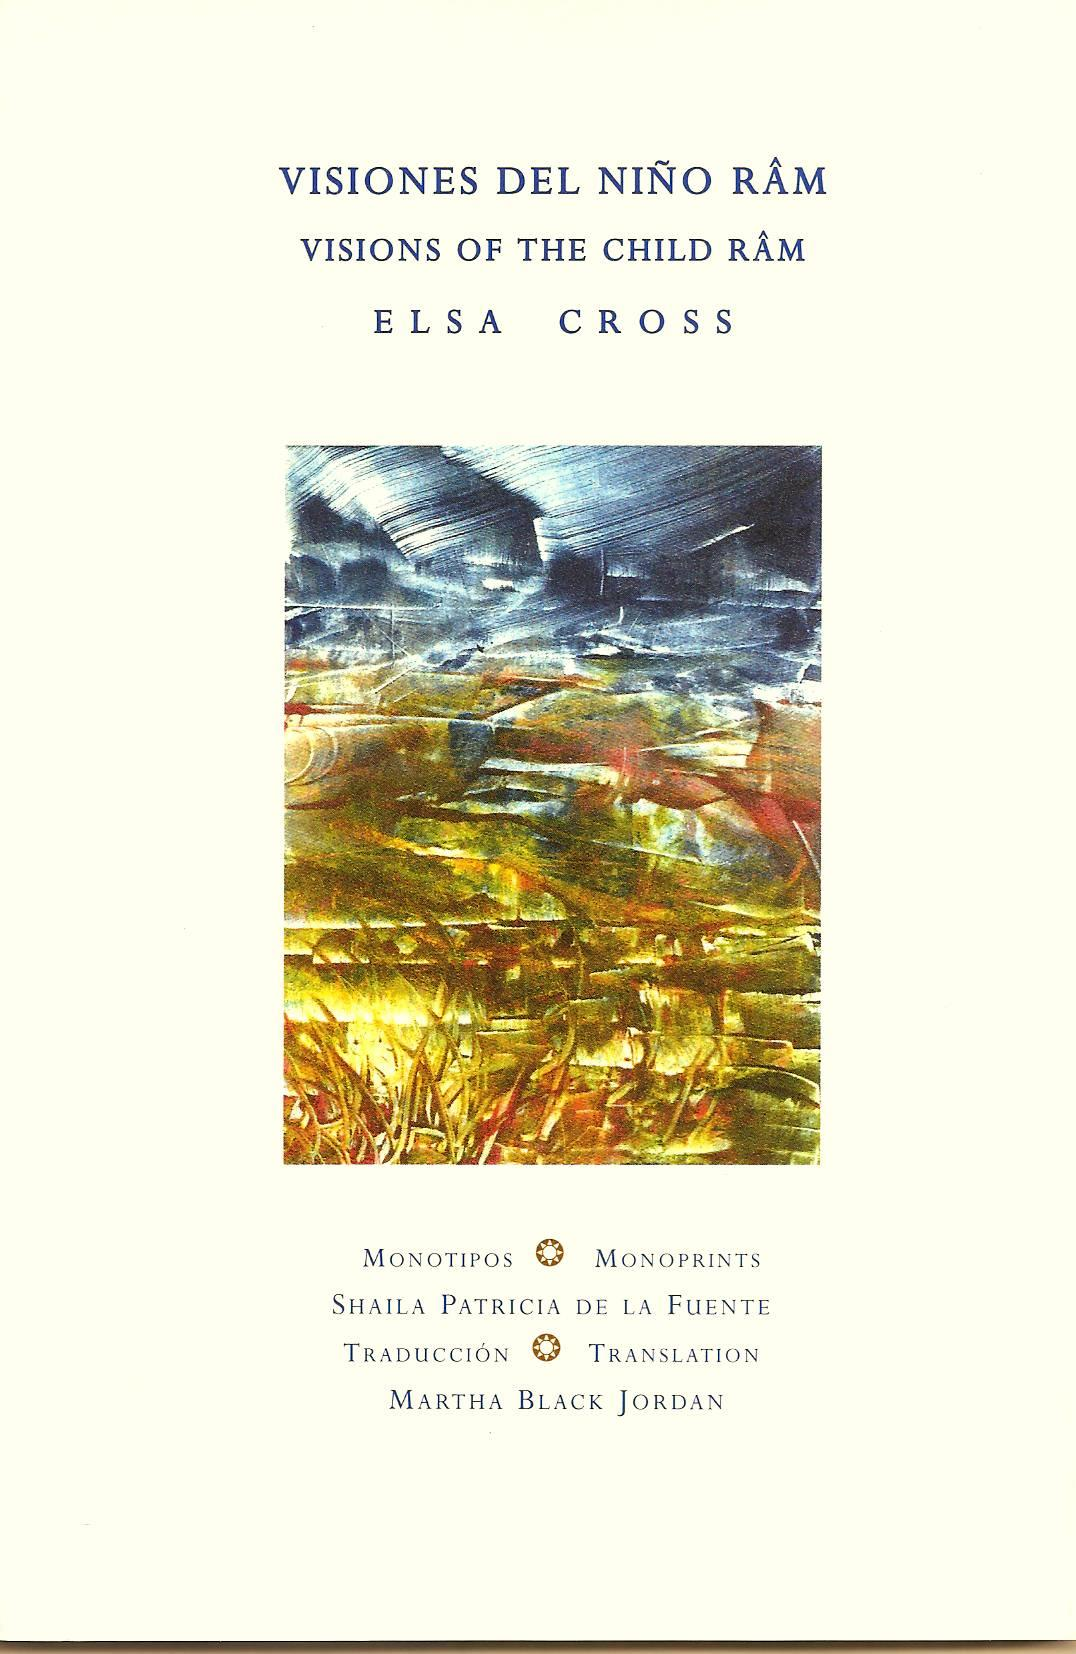 Elsa Cross: Visions of the Child Rām